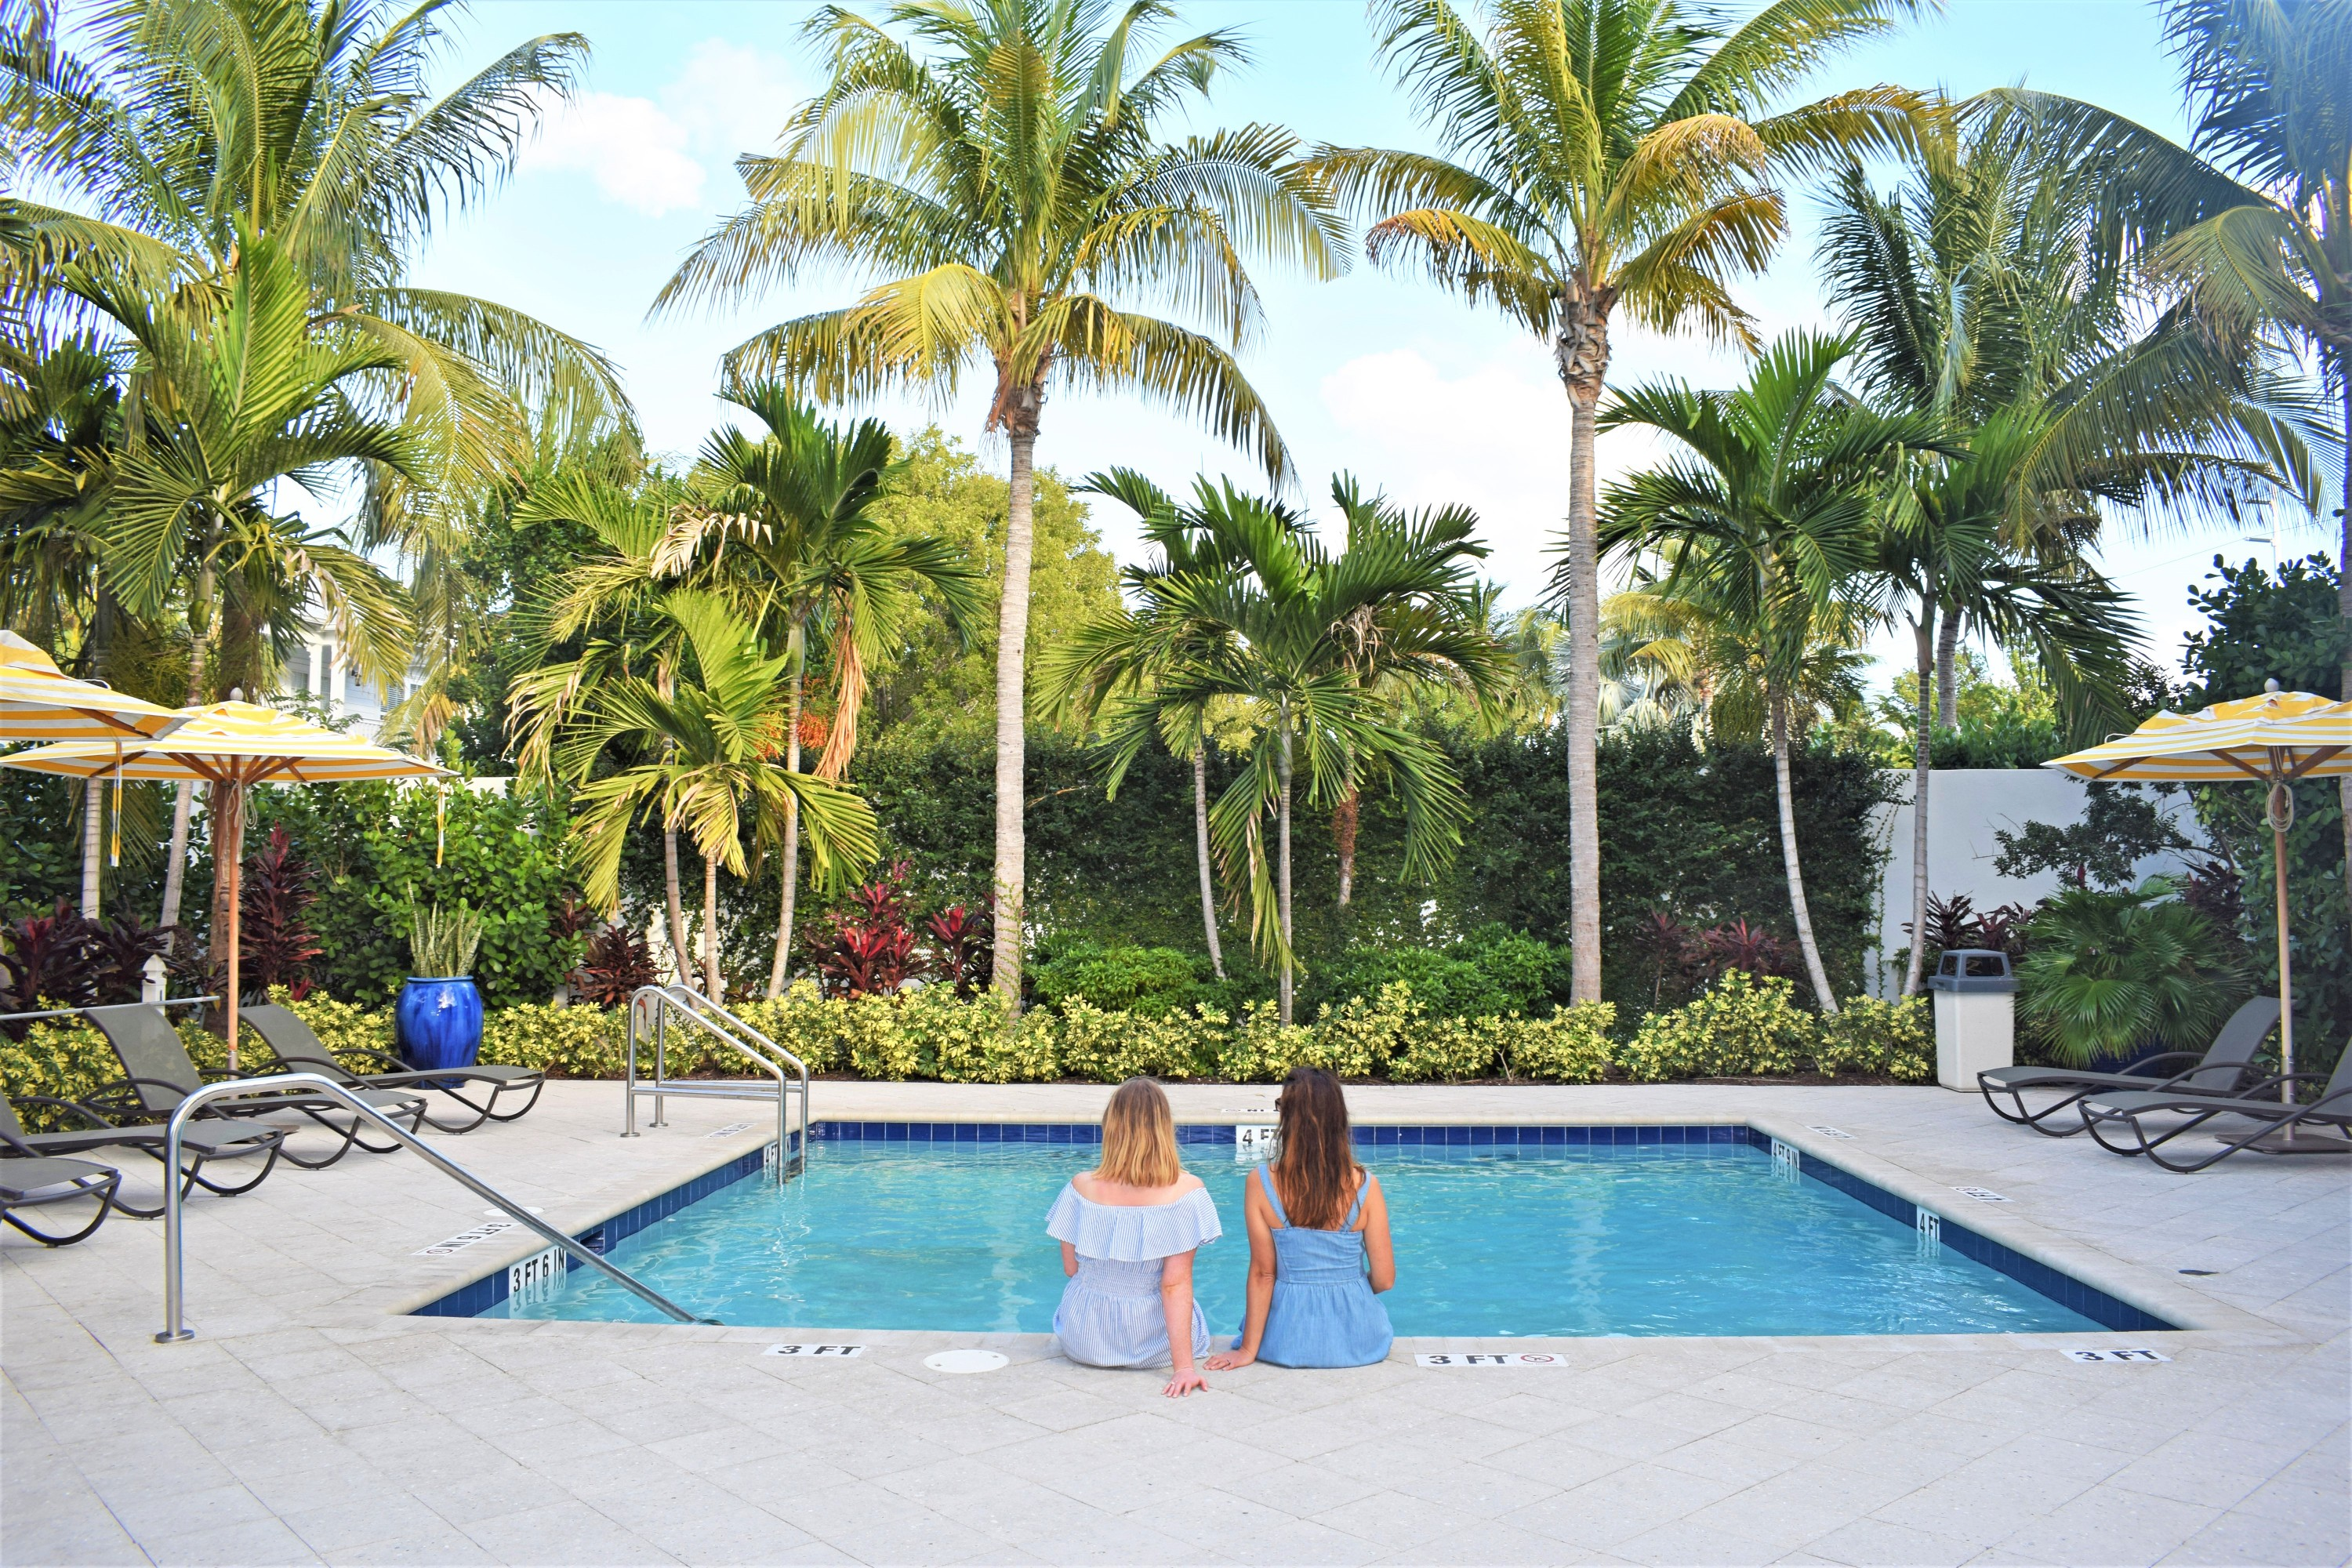 Two young women sitting by the edge of a pool surrounded by palm trees in the Florida Keys